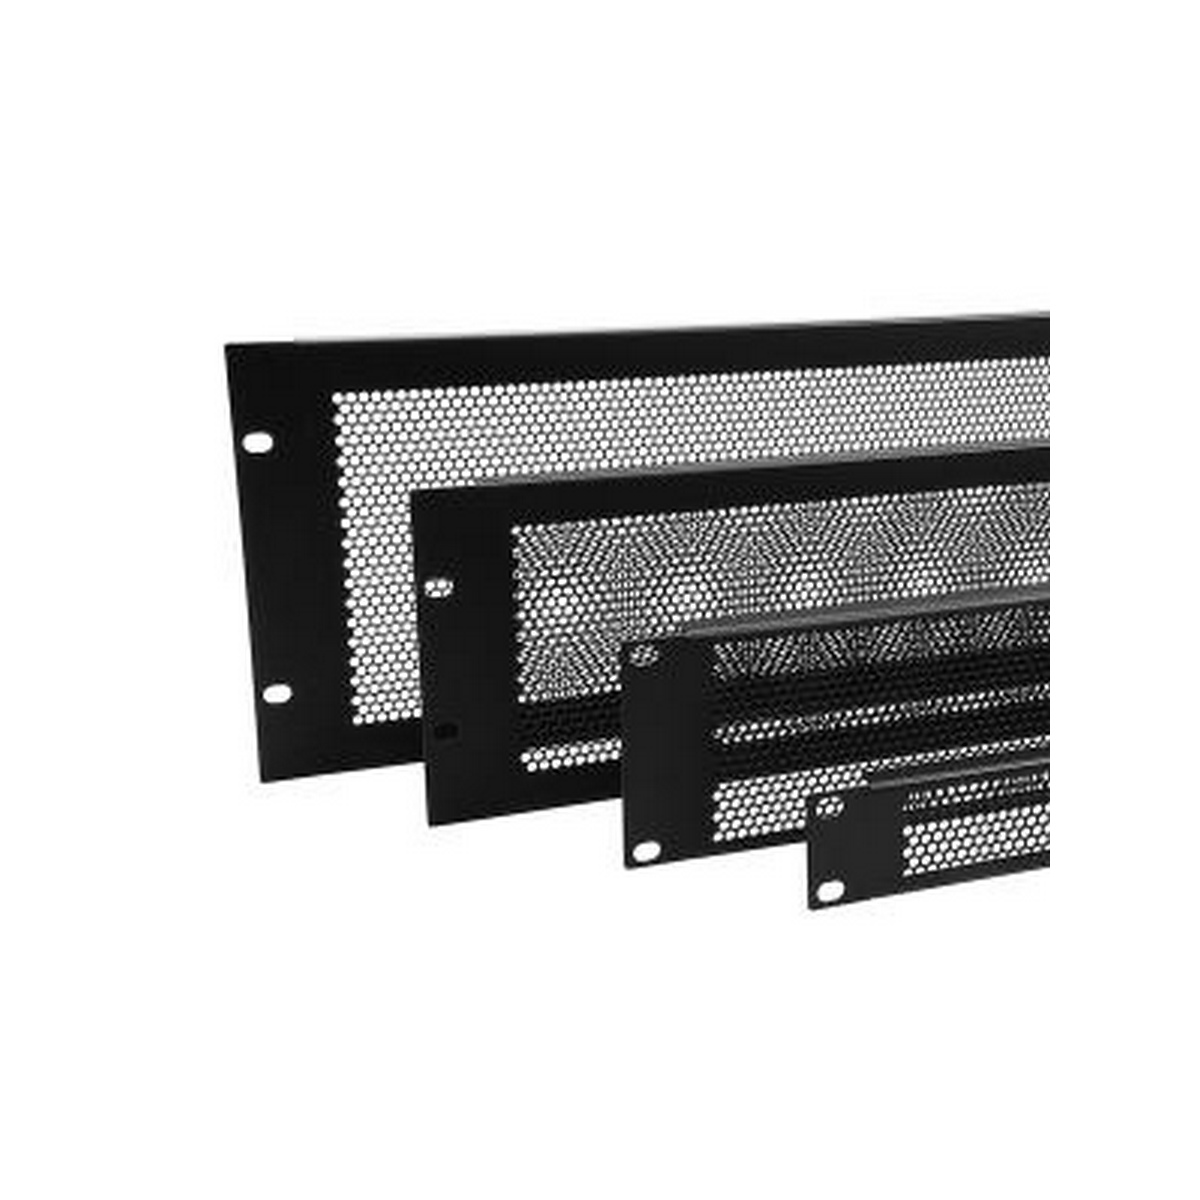 Penn Elcom R1286/1UVK Black 1 space Flanged perforated Rack Panel